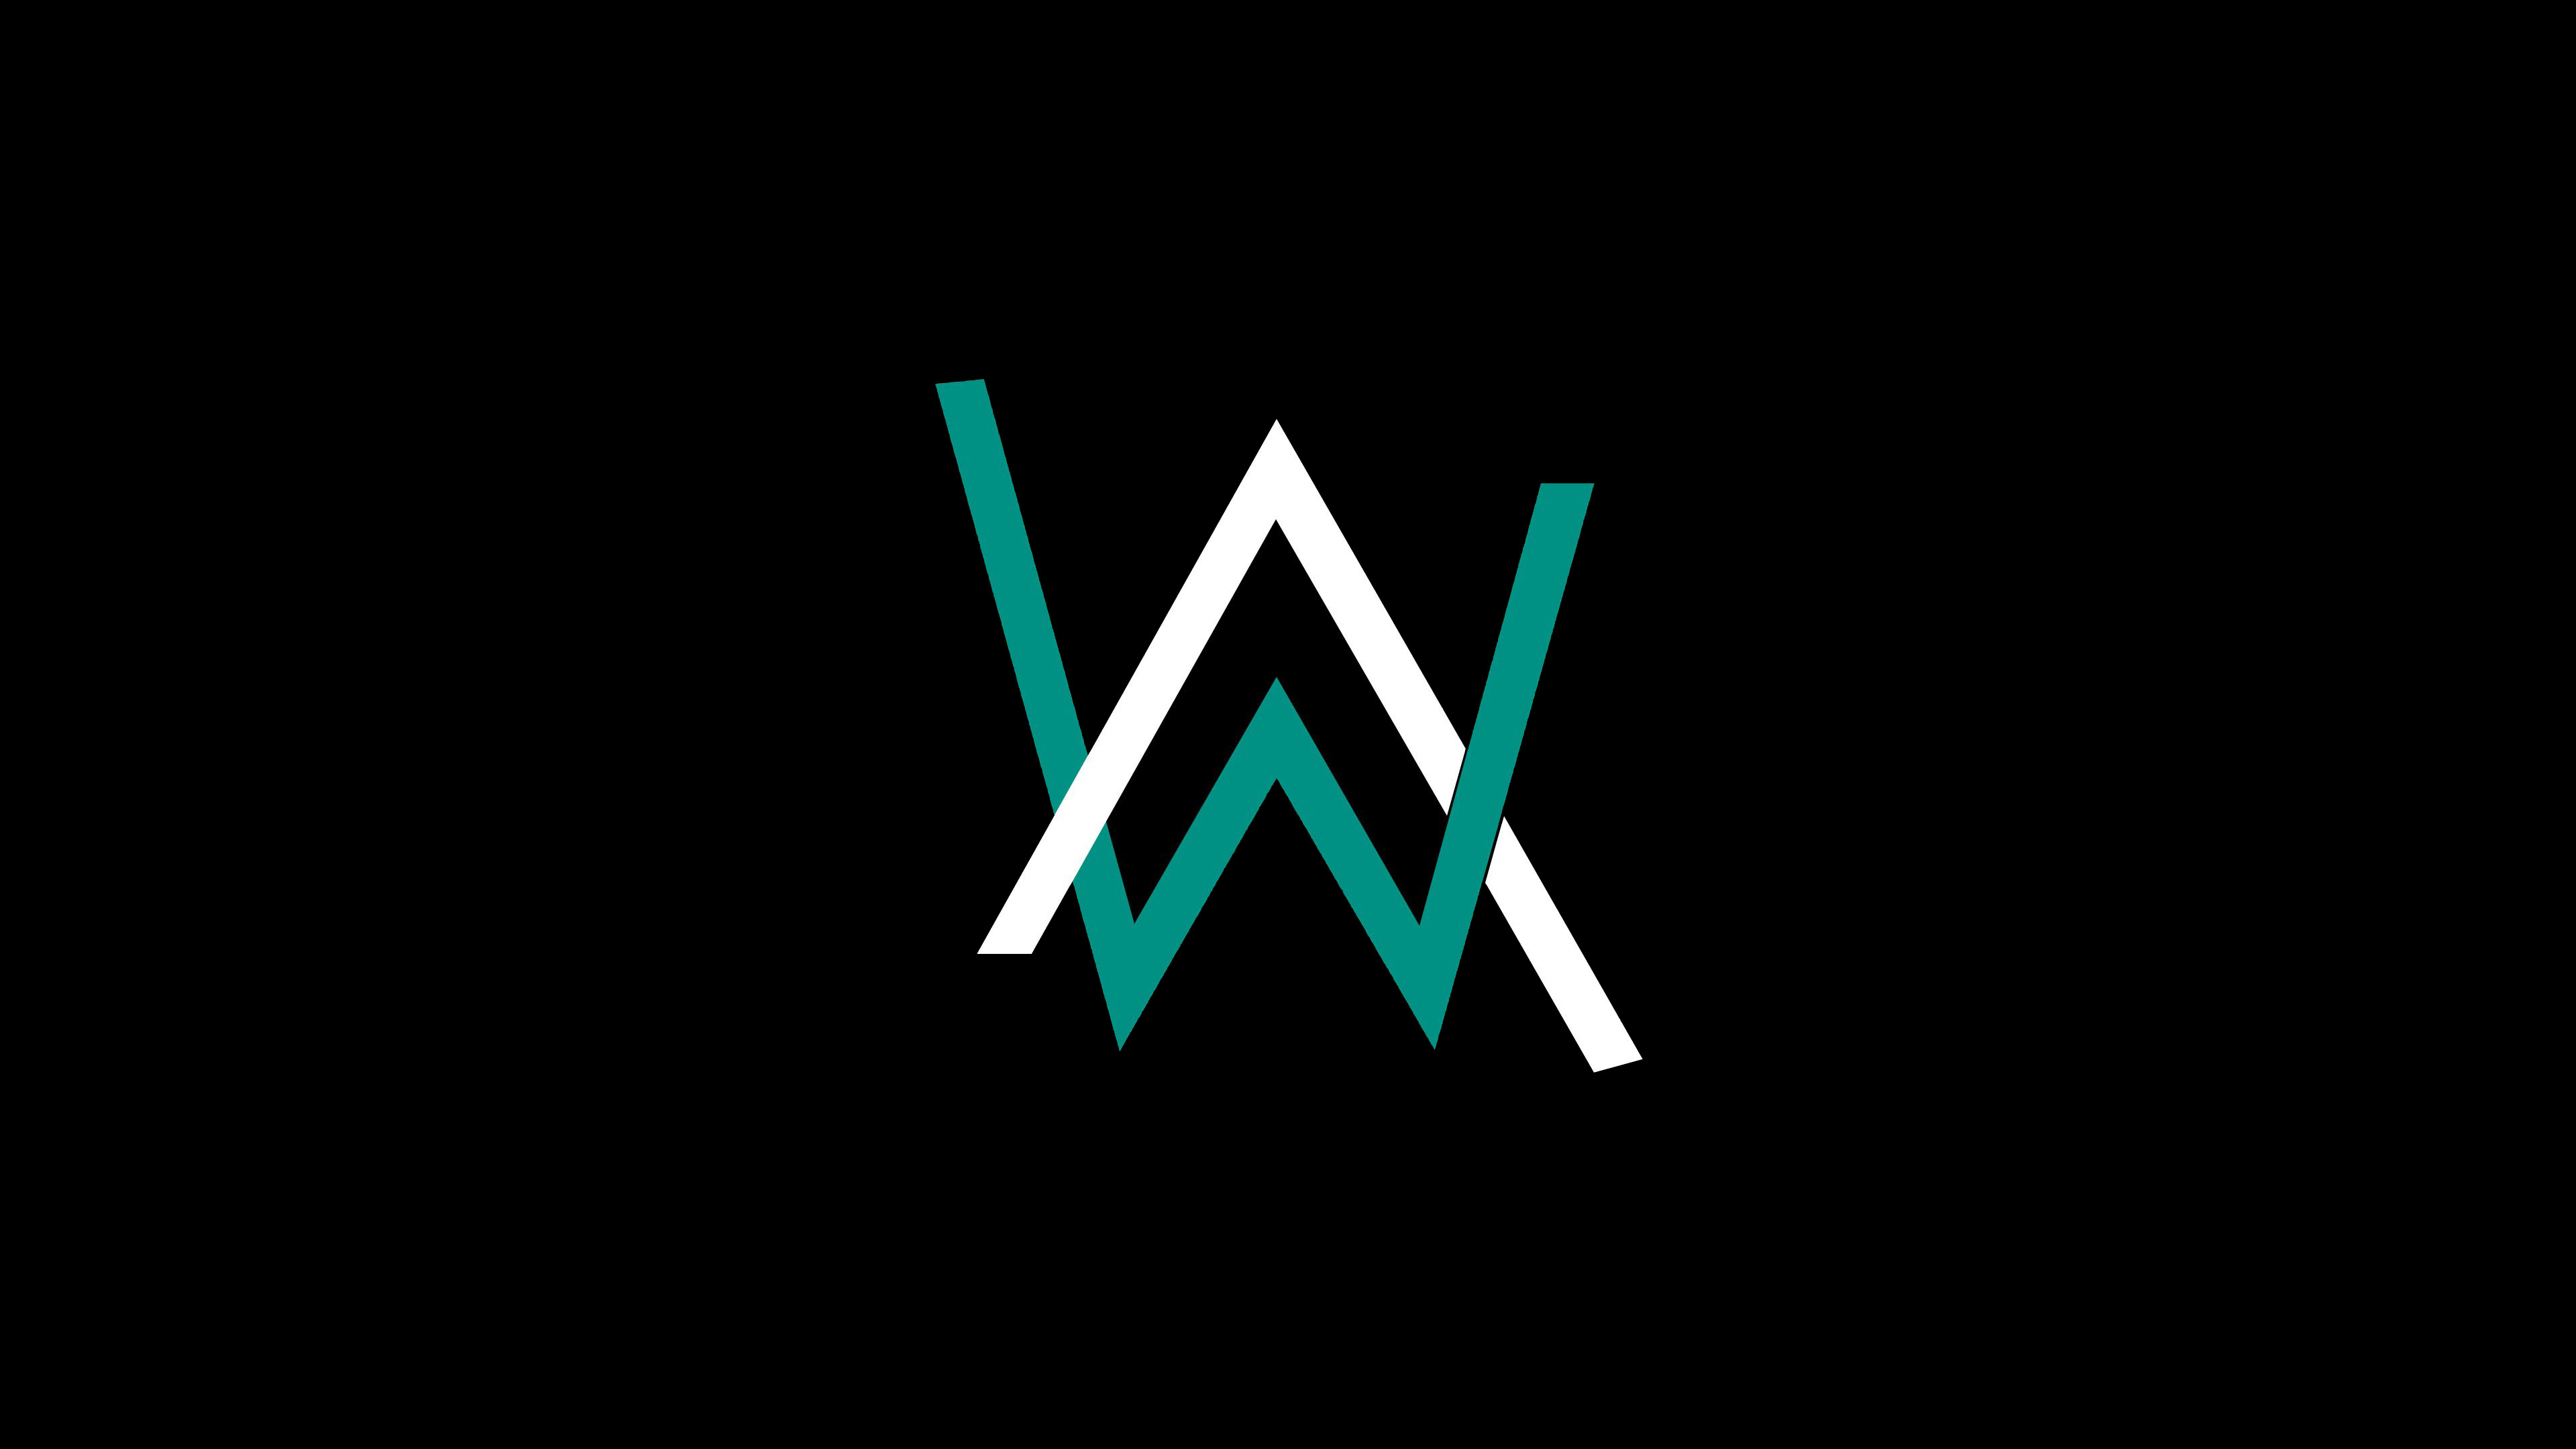 alan walker logo 4k hd music 4k wallpapers images